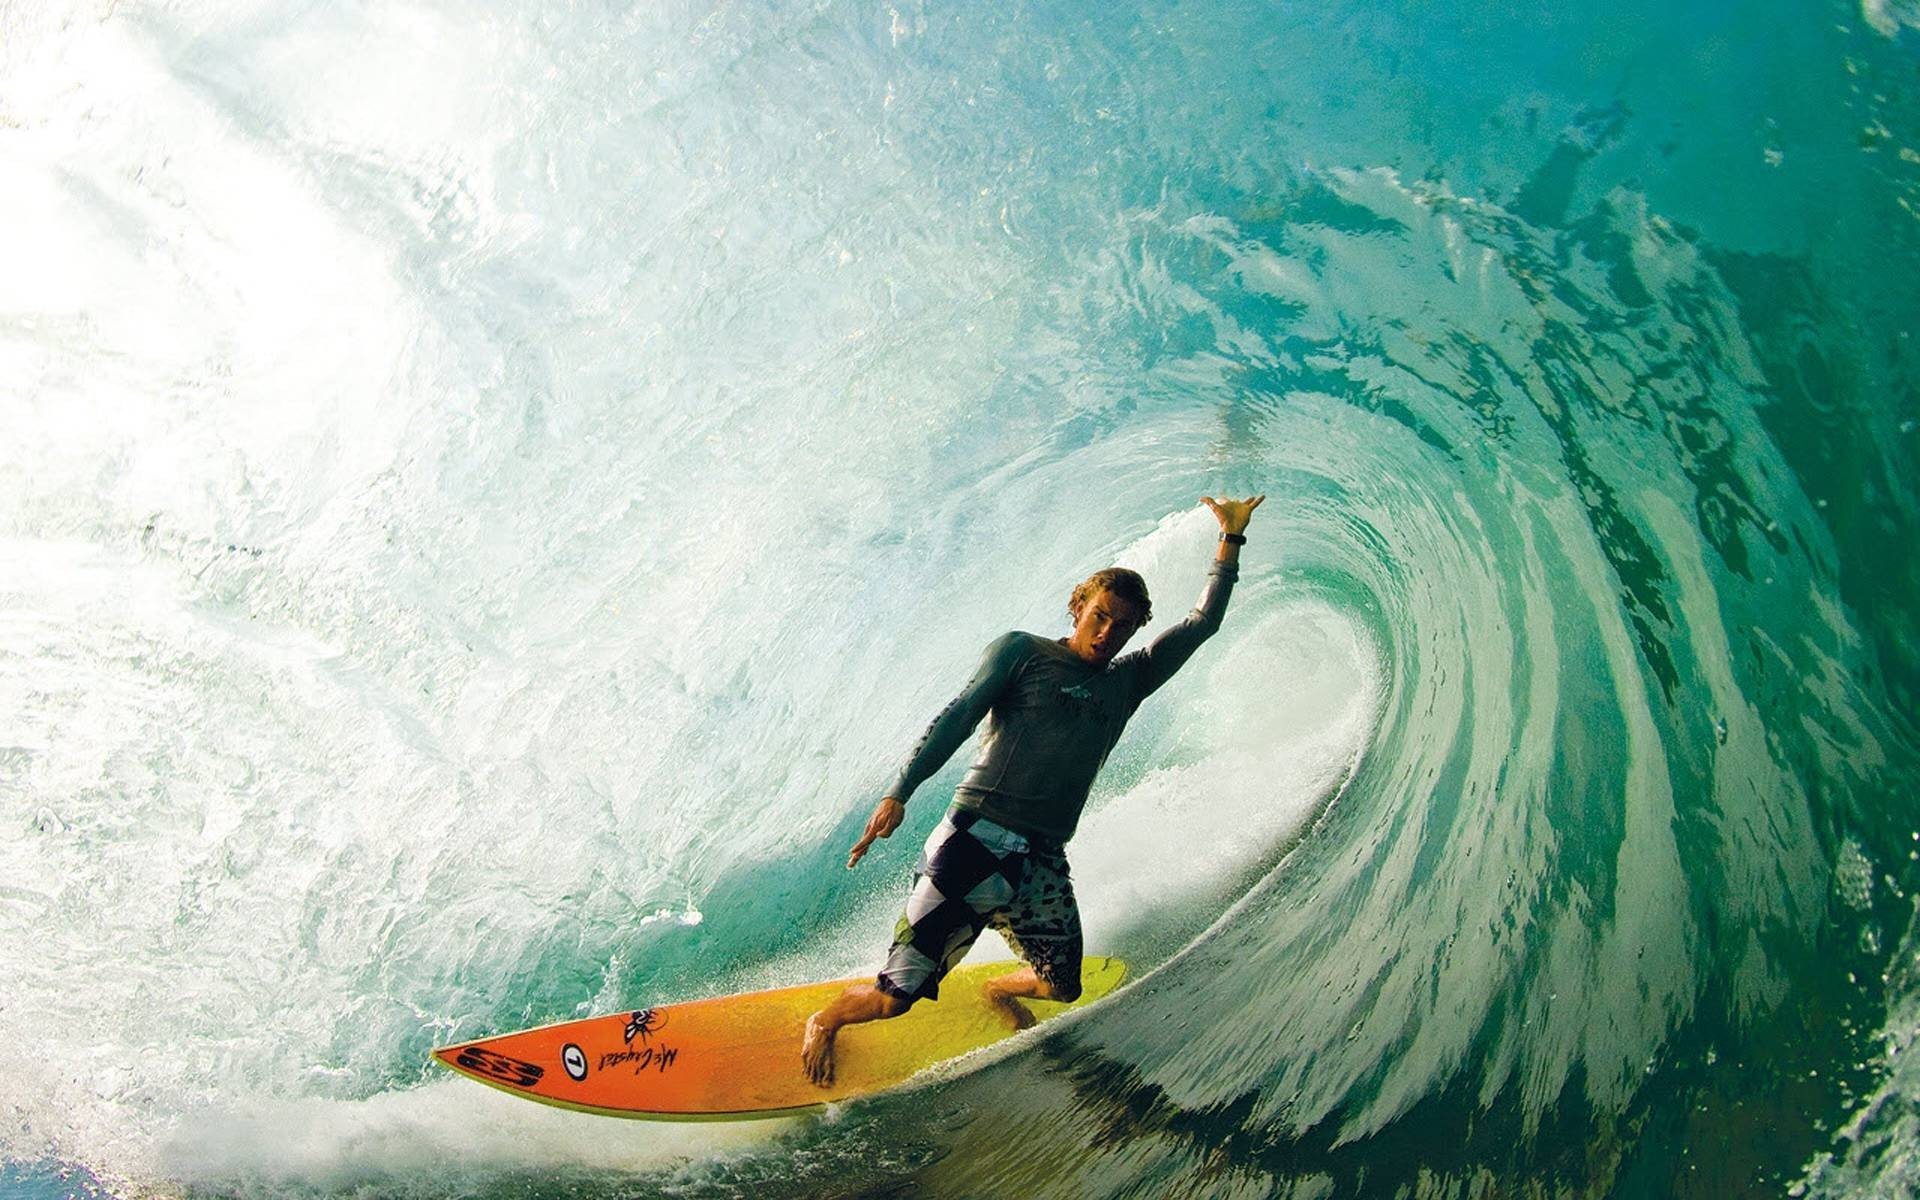 1920x1200 Cool HD Surf Wallpaper - WallpaperSafari